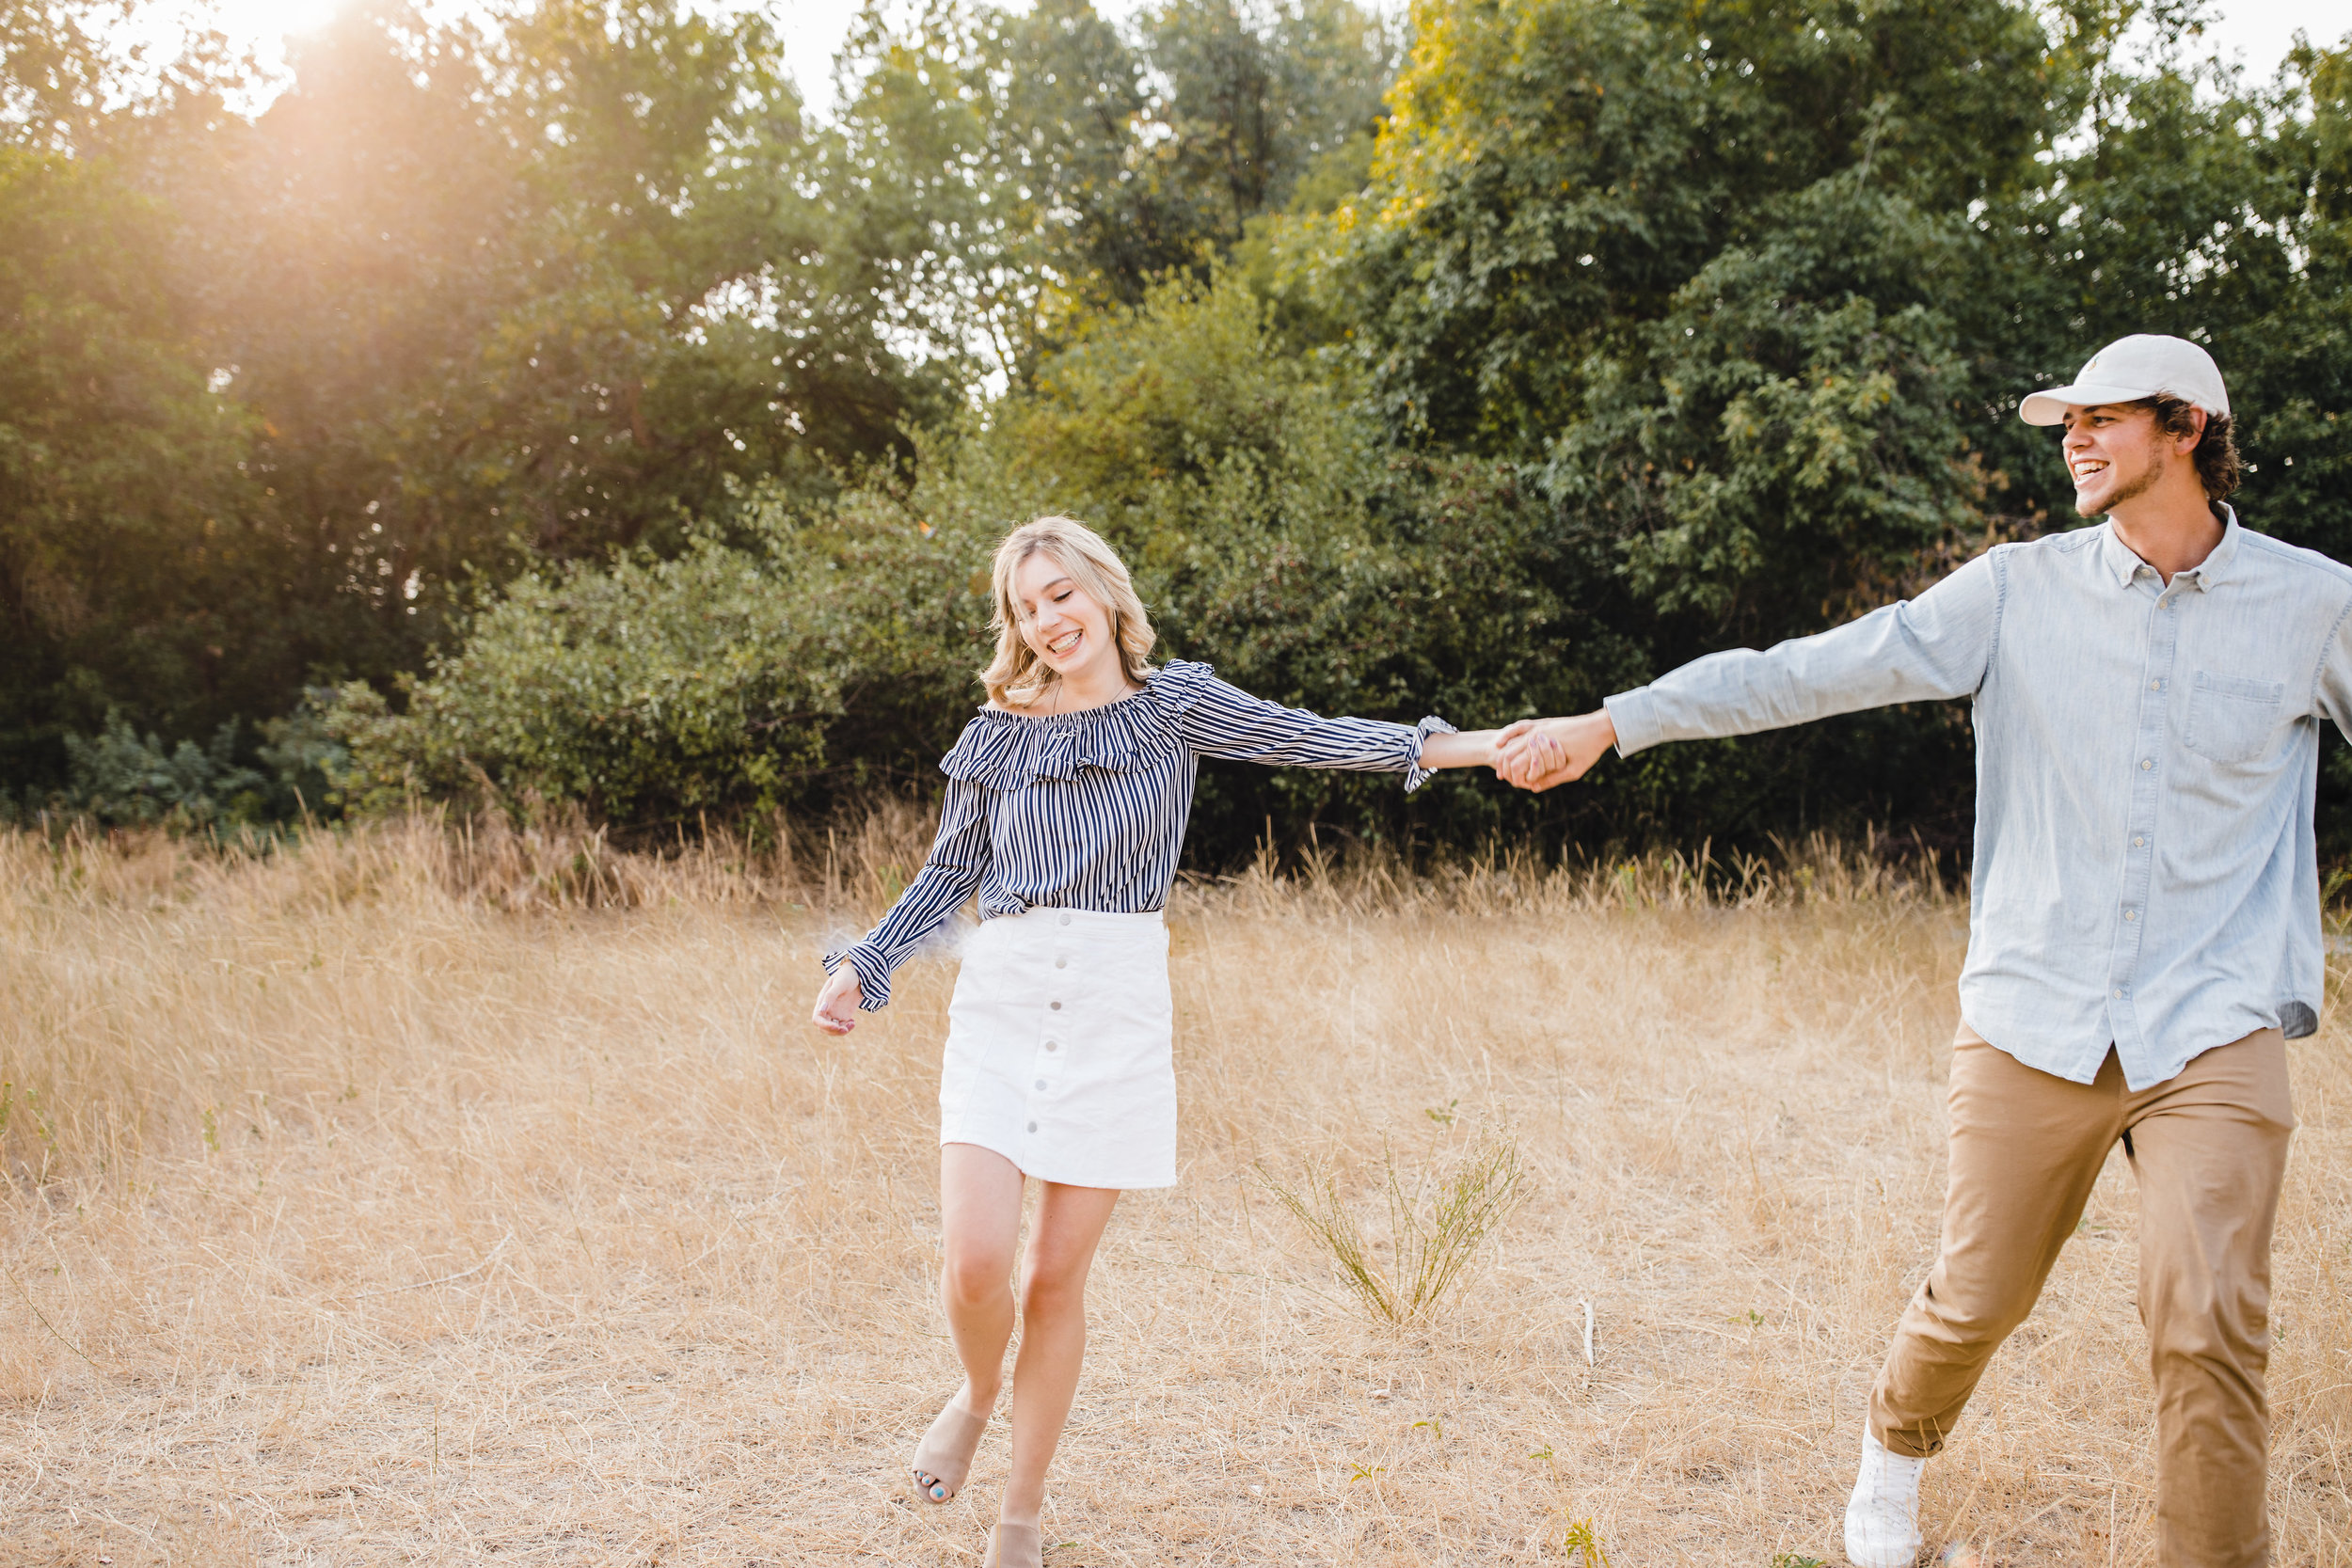 professional couples photographer in cache valley utah holding hands walking laughing field